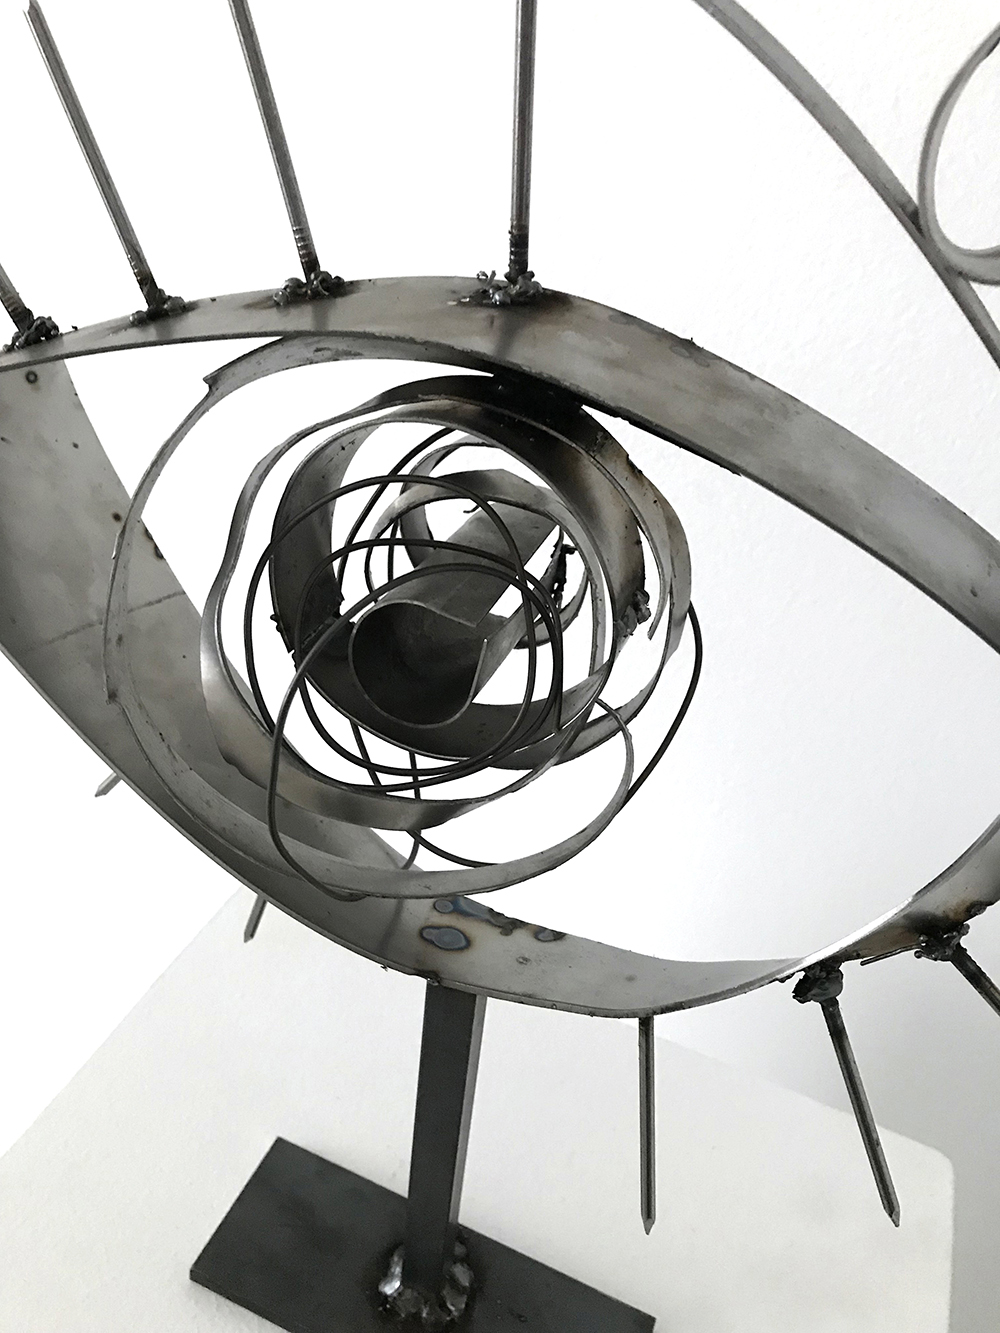 Indira-Cesarine-22ONLY-YOU-No-100022-steel-sculpture-detail-@72-x-1000-copy.jpg